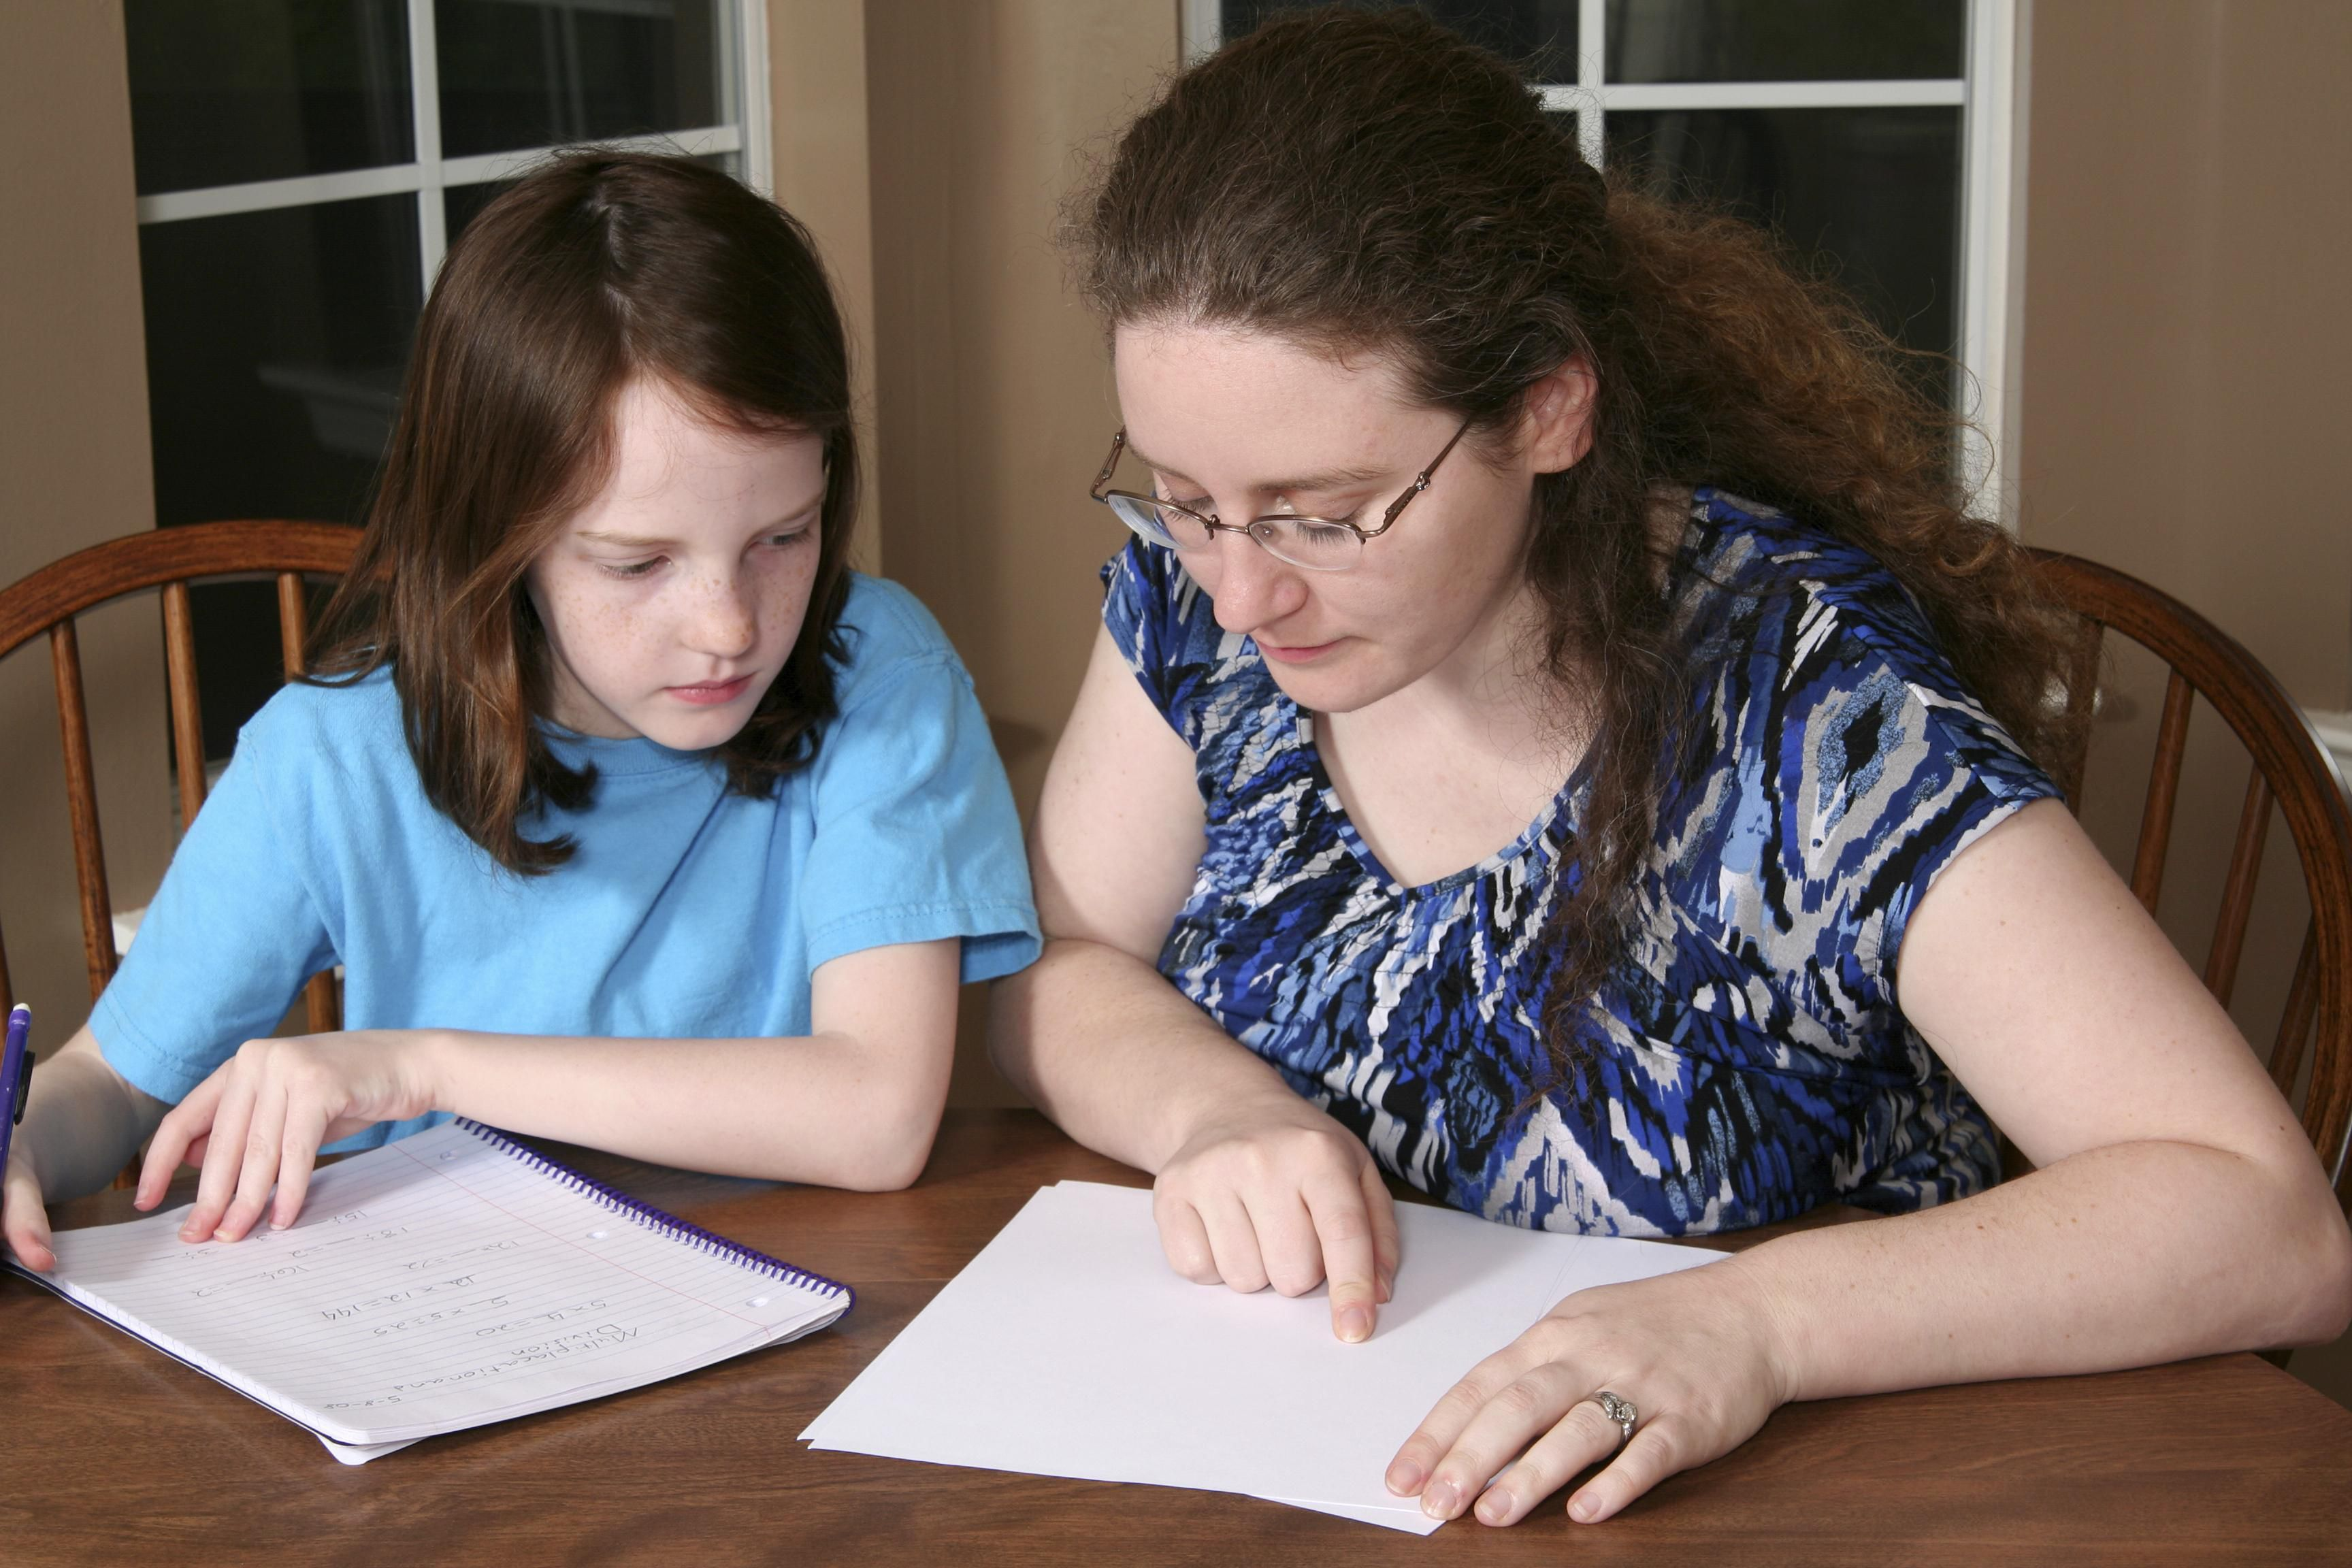 Woman tutoring a child with schoolwork